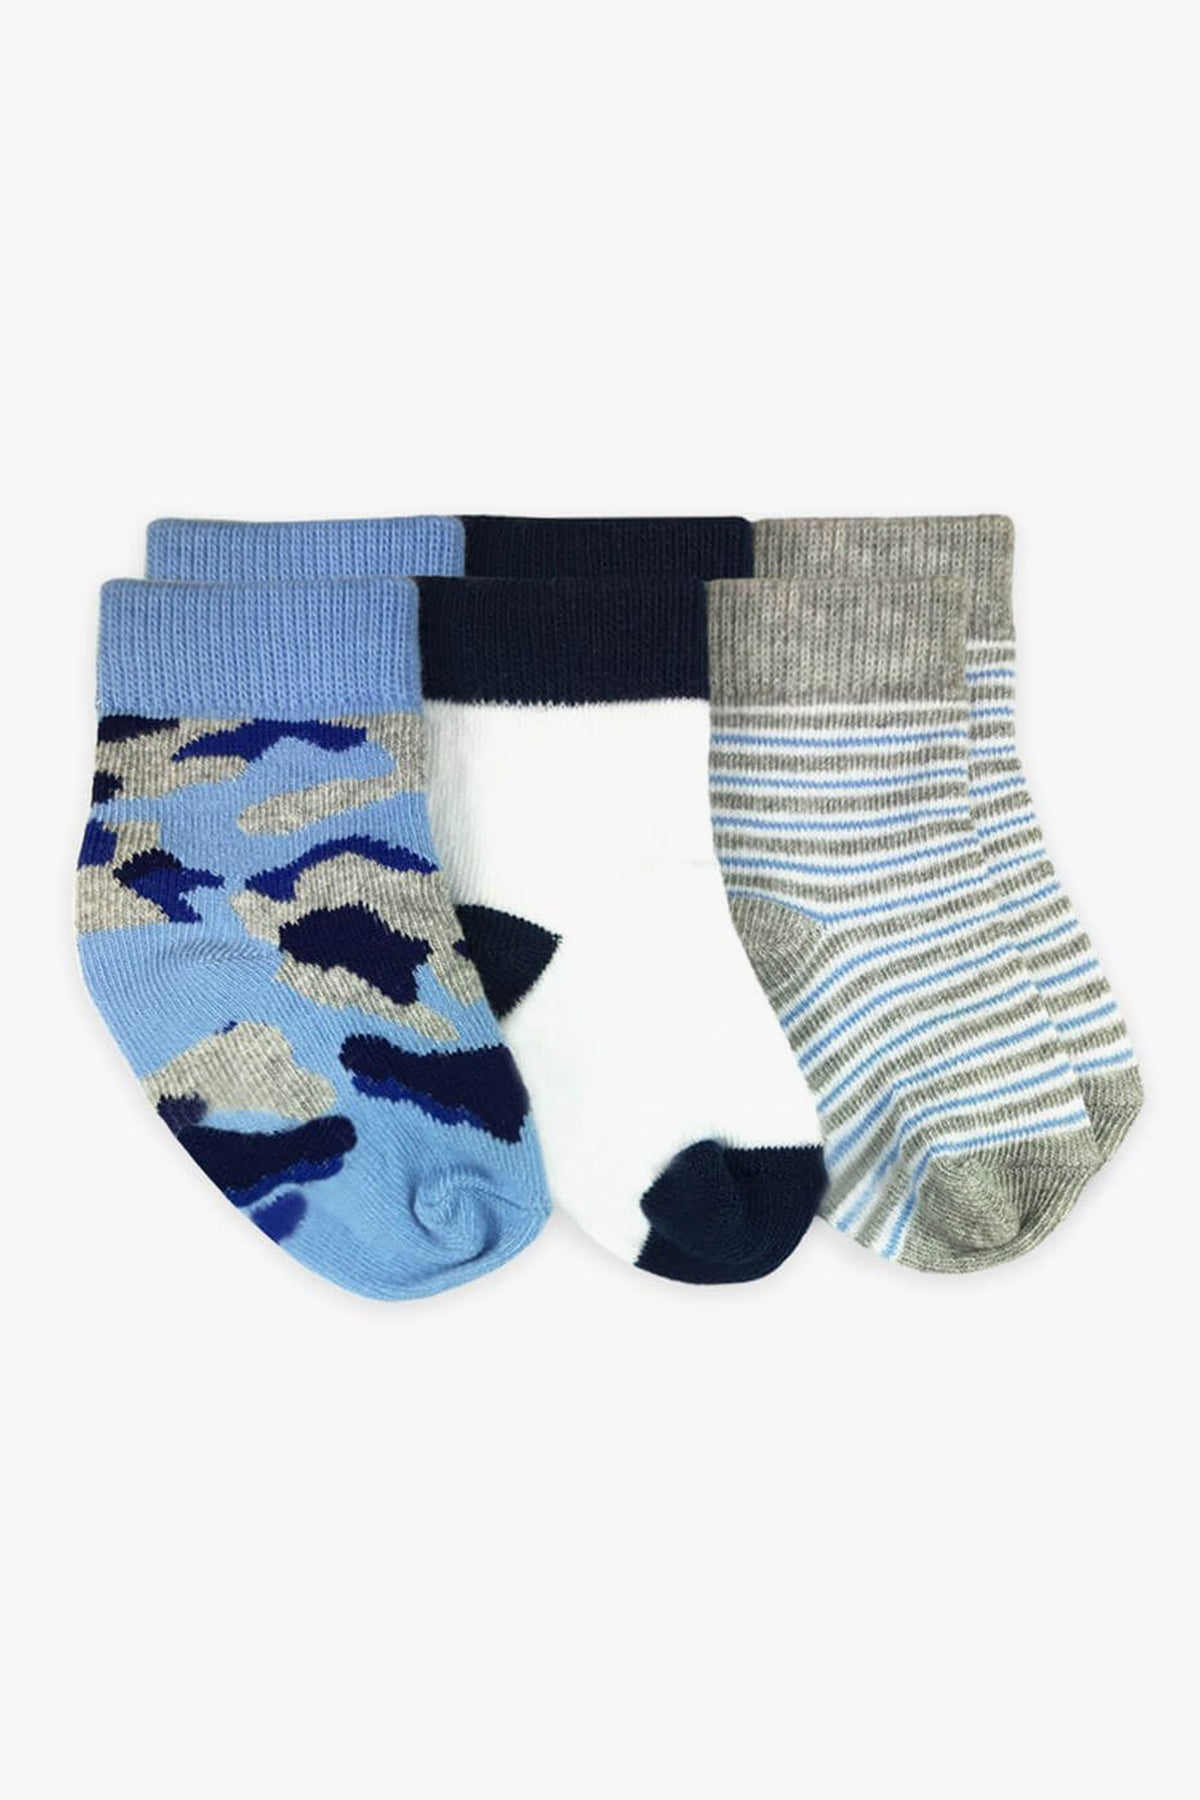 Jefferies Socks Camo Baby Socks 3-Pack